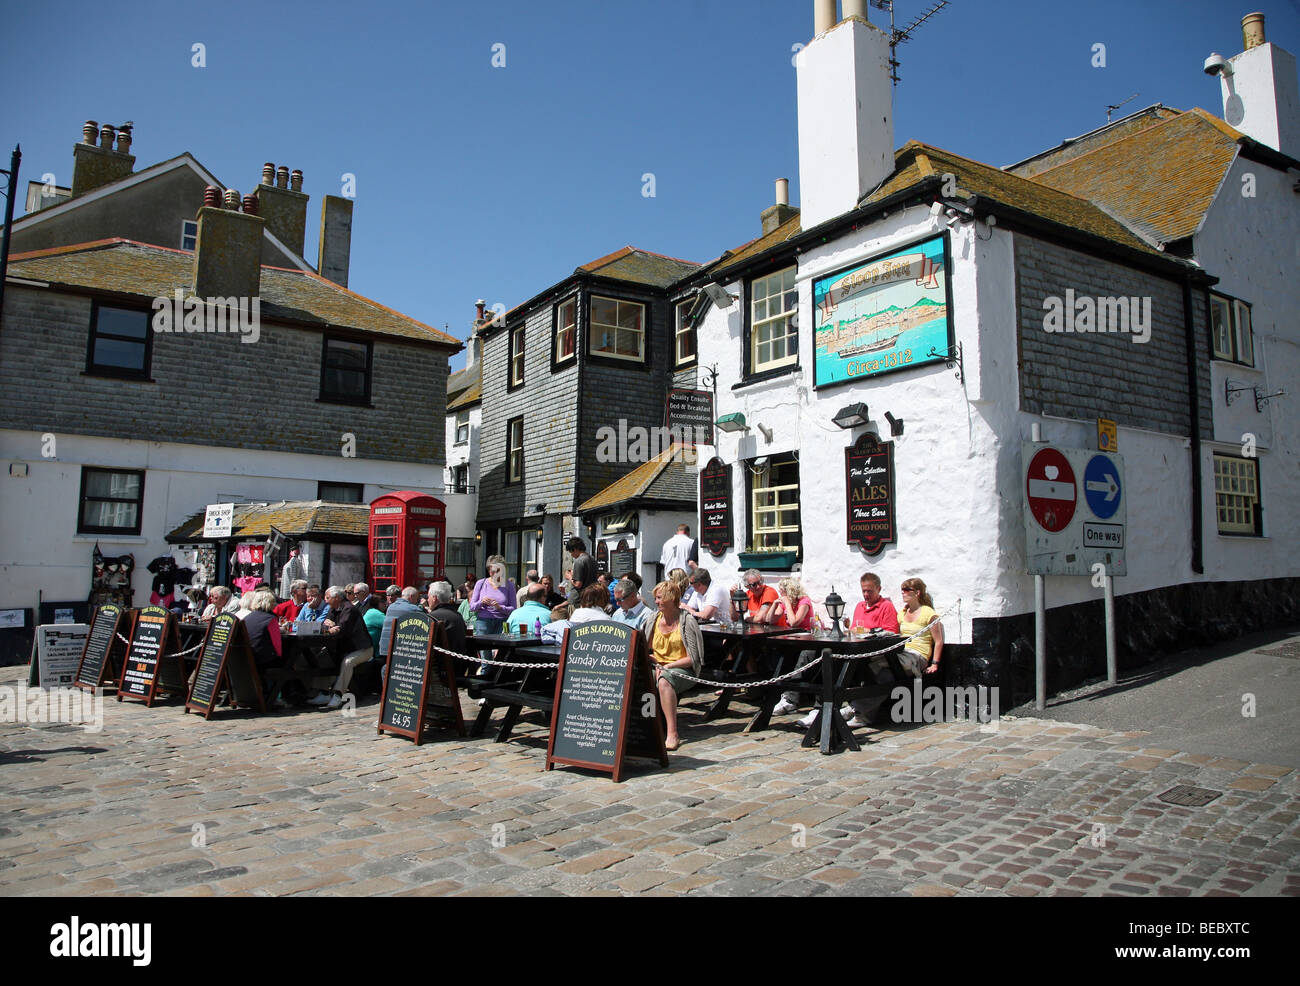 People eating and drinking outside The Sloop Inn pub on the sea front at St. Ives, Cornwall, England - Stock Image